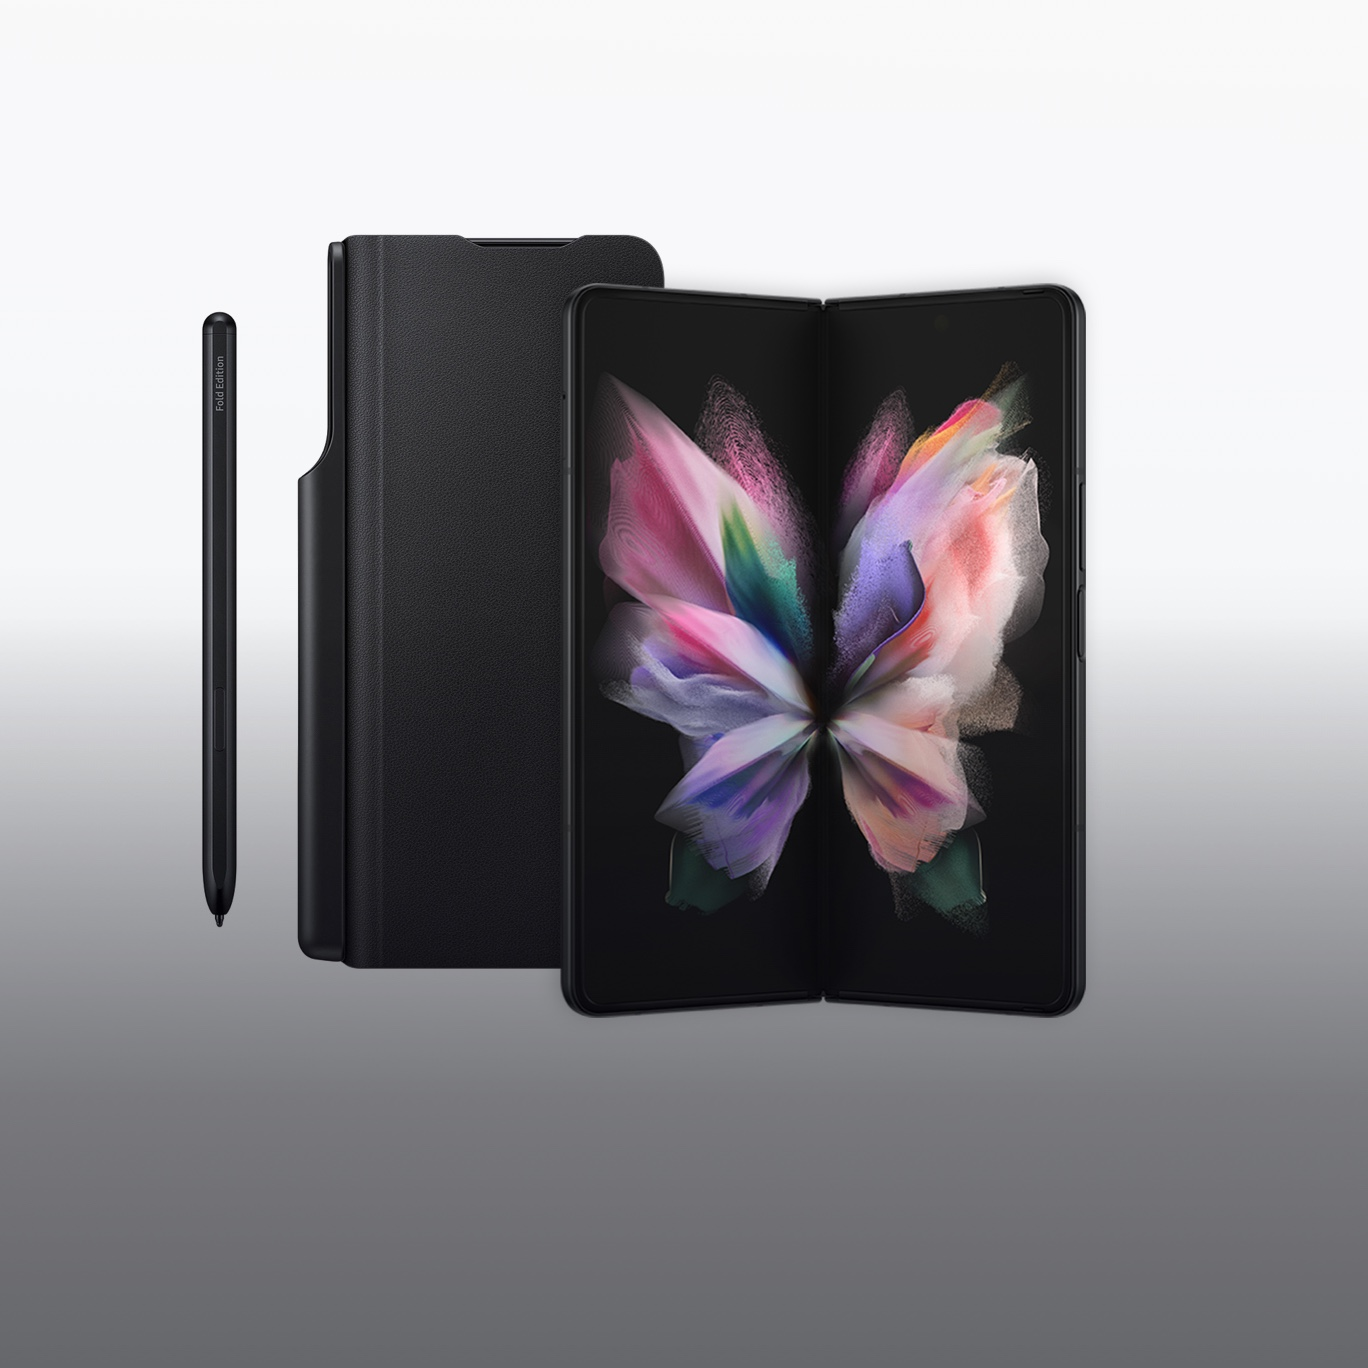 Buy Galaxy Z Fold3 5G and get a free Flip Cover with S Pen plus $100 instant credit